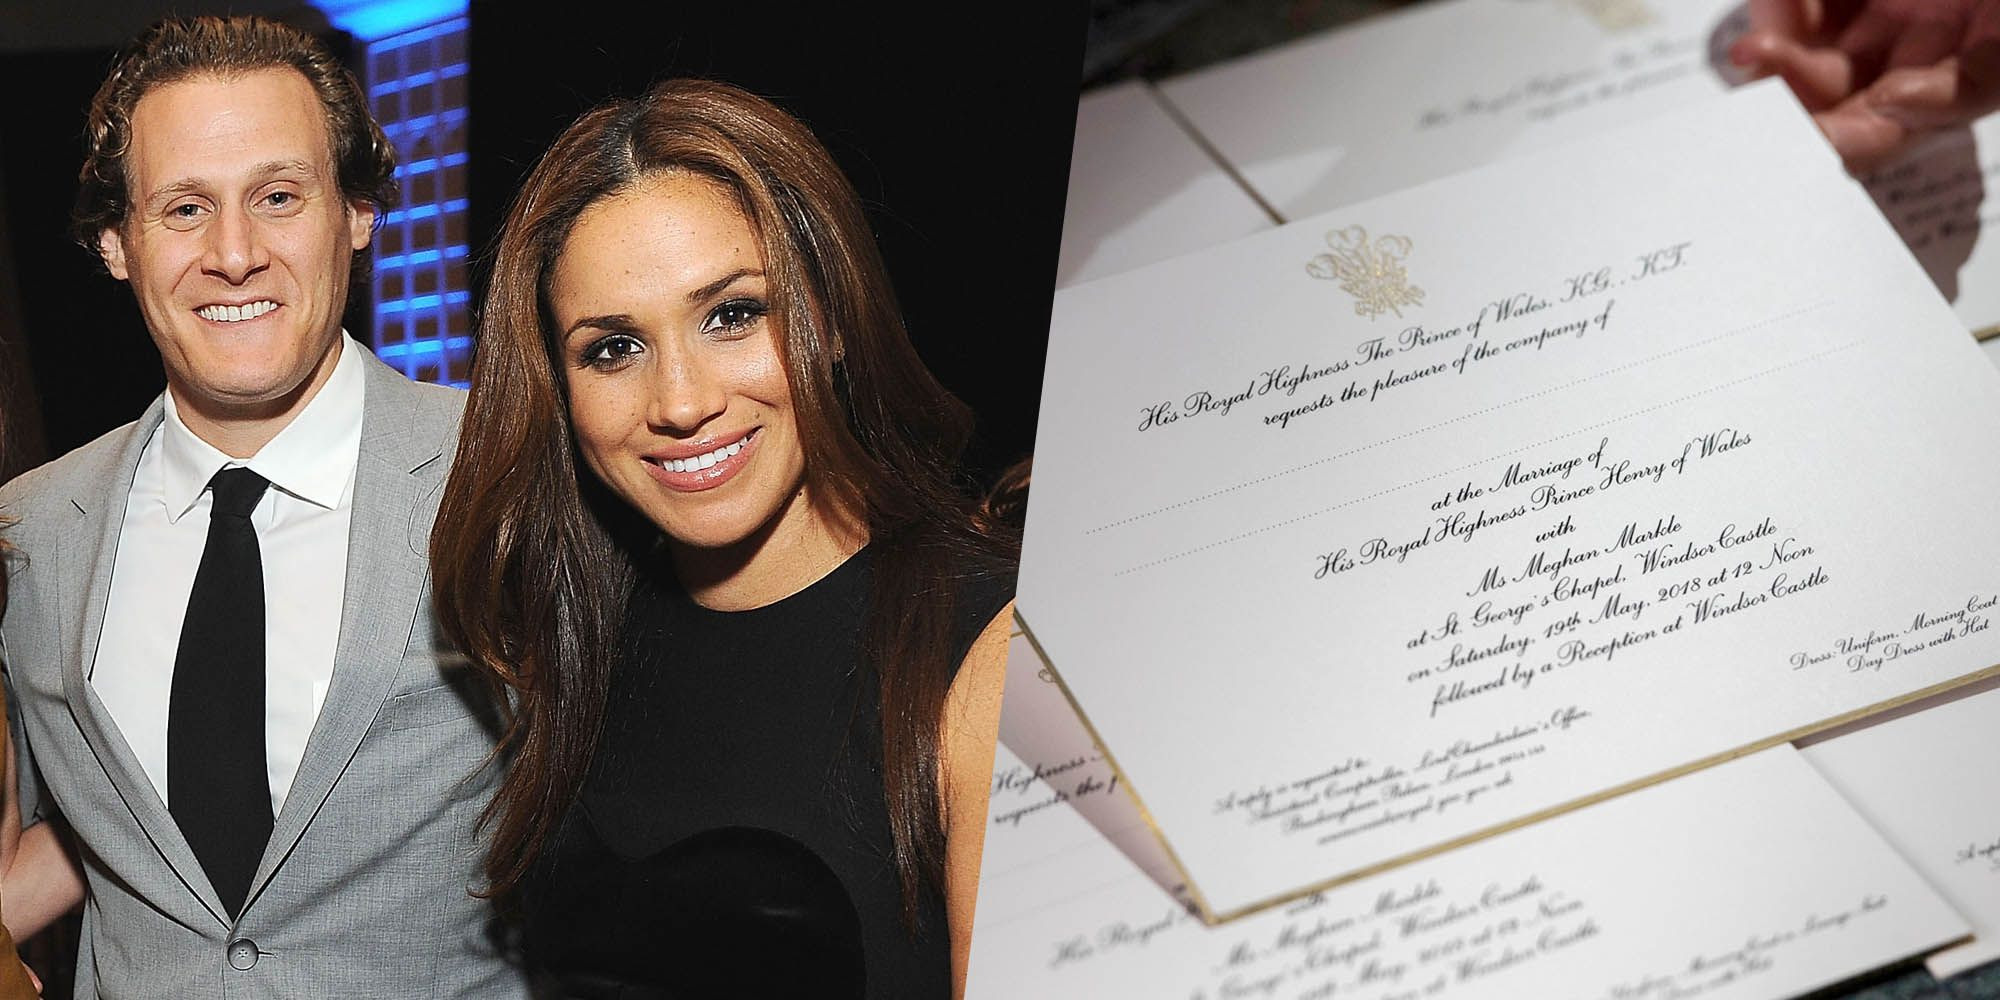 meghan markle s divorce was subtly referenced in the royal wedding invitations royal wedding invitations